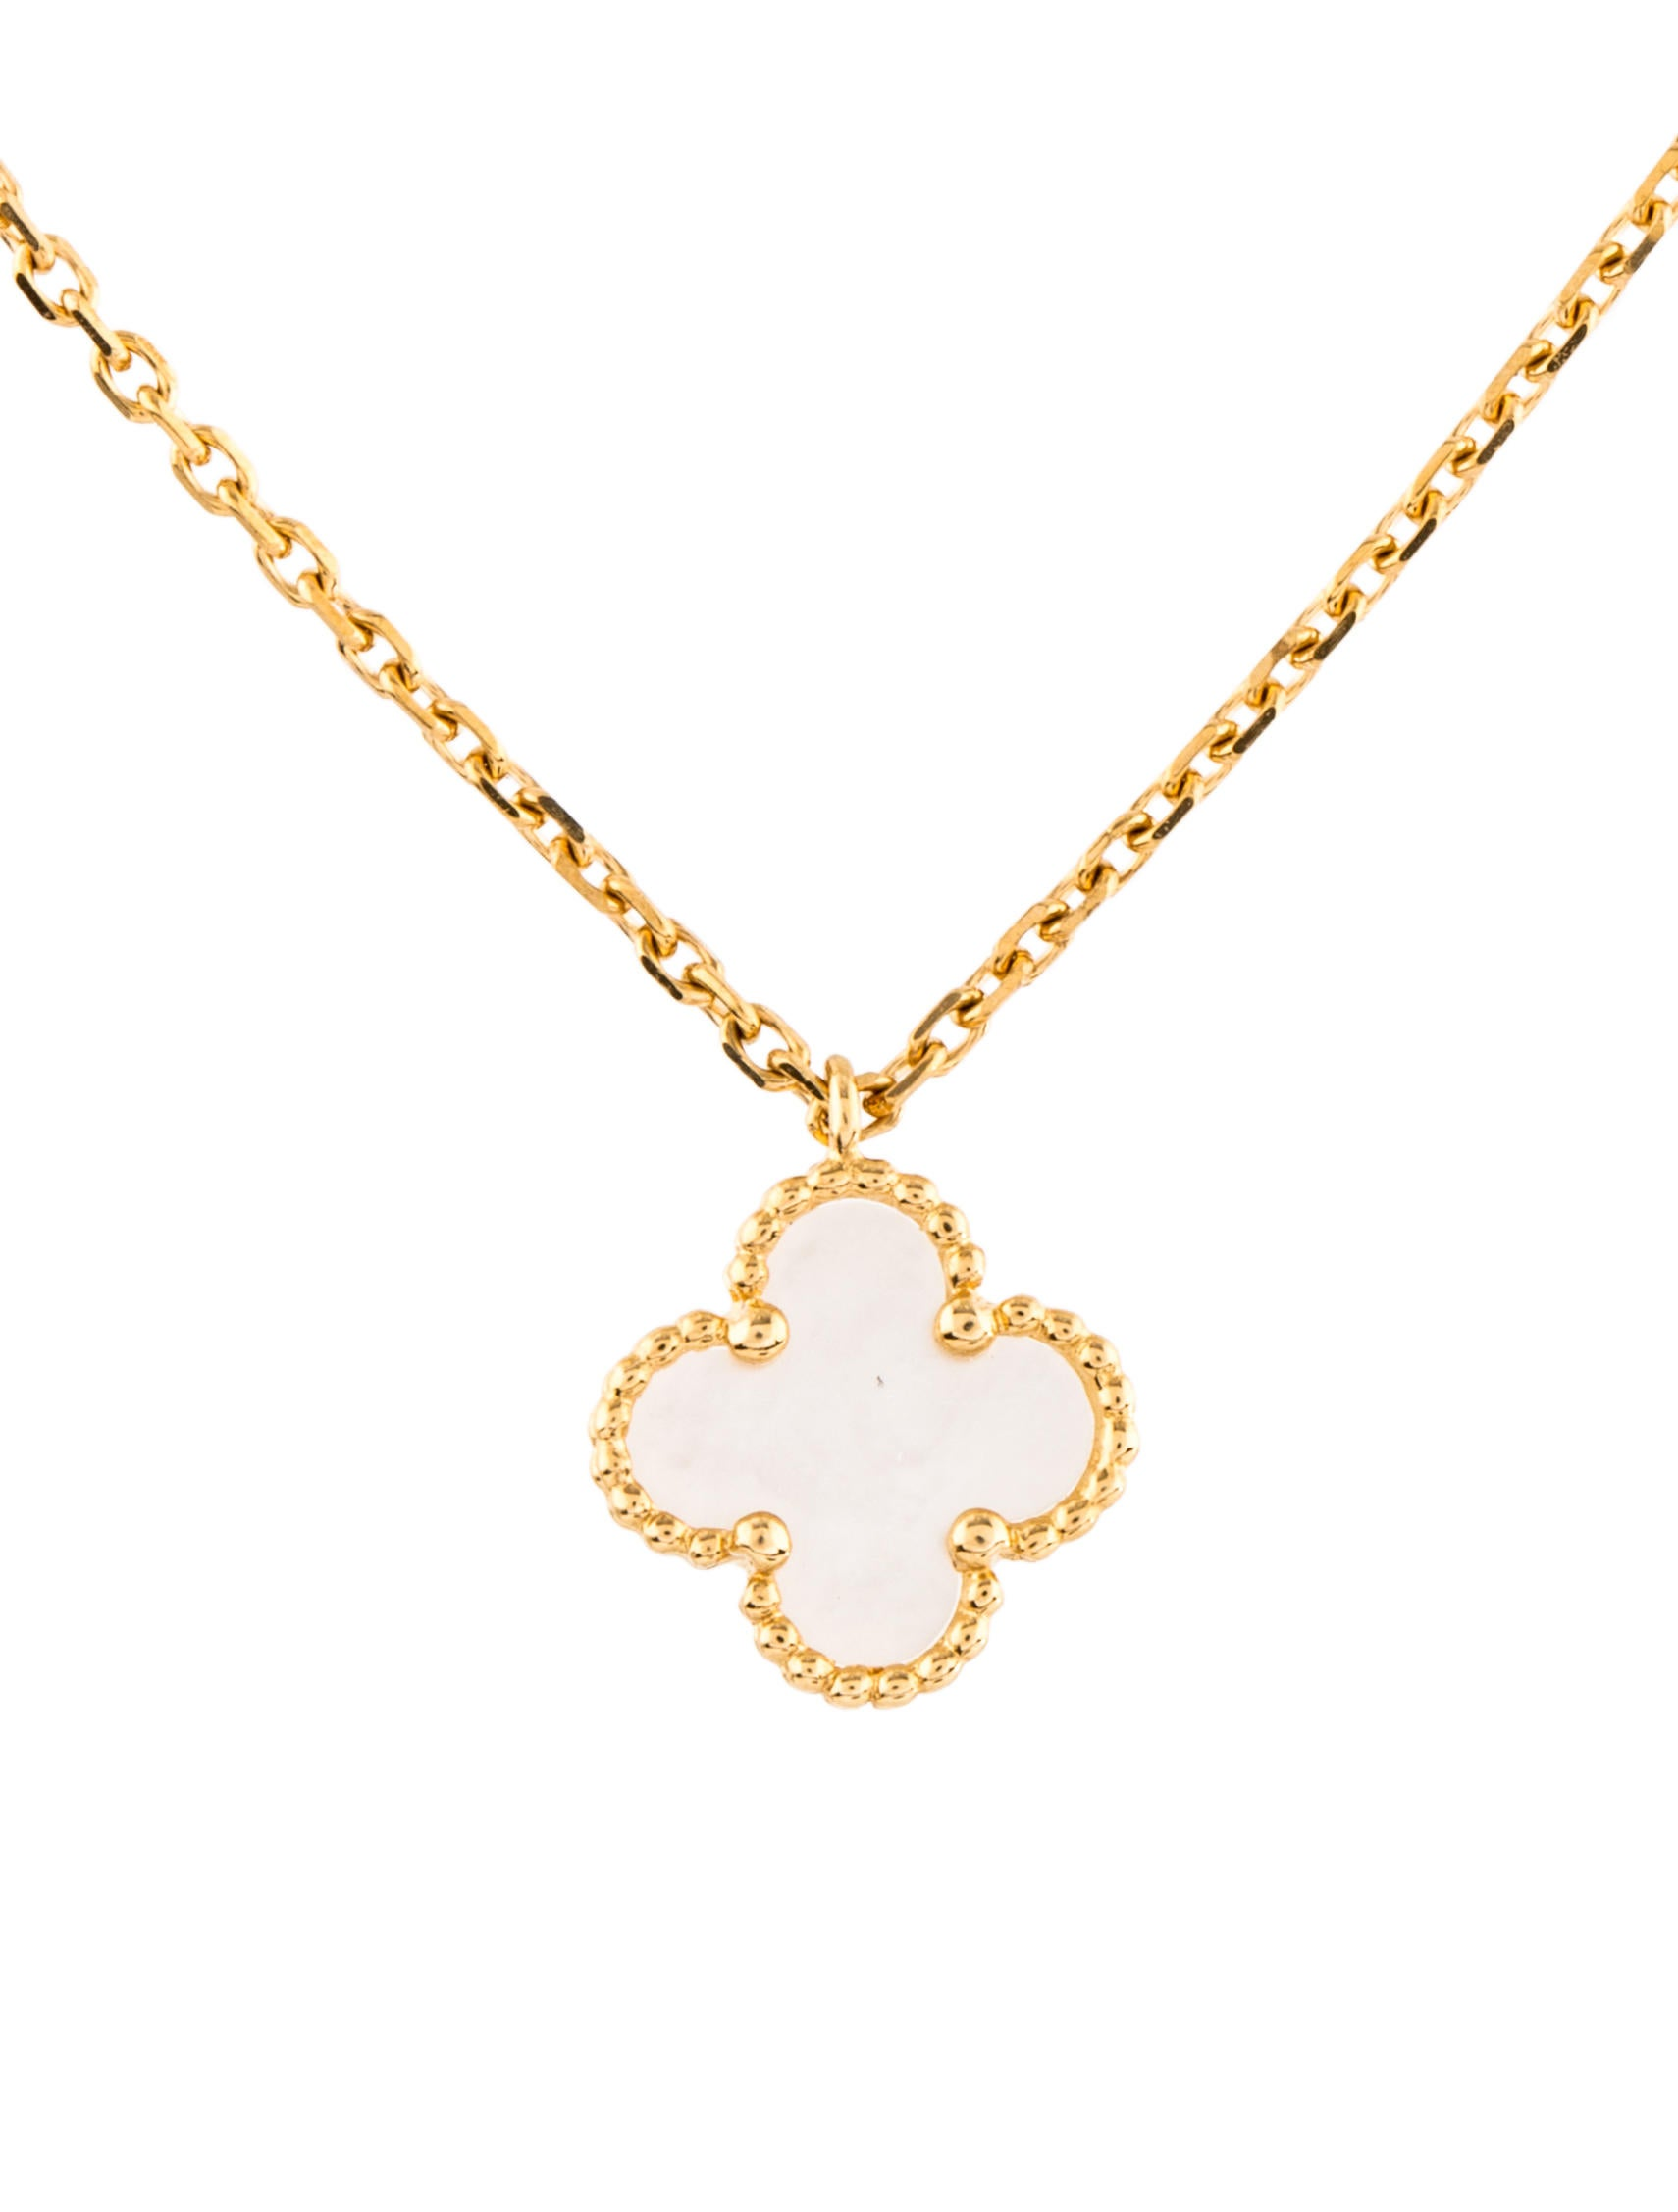 enlarged sweet necklaces arpels jewelry products necklace van cleef alhambra pendant and